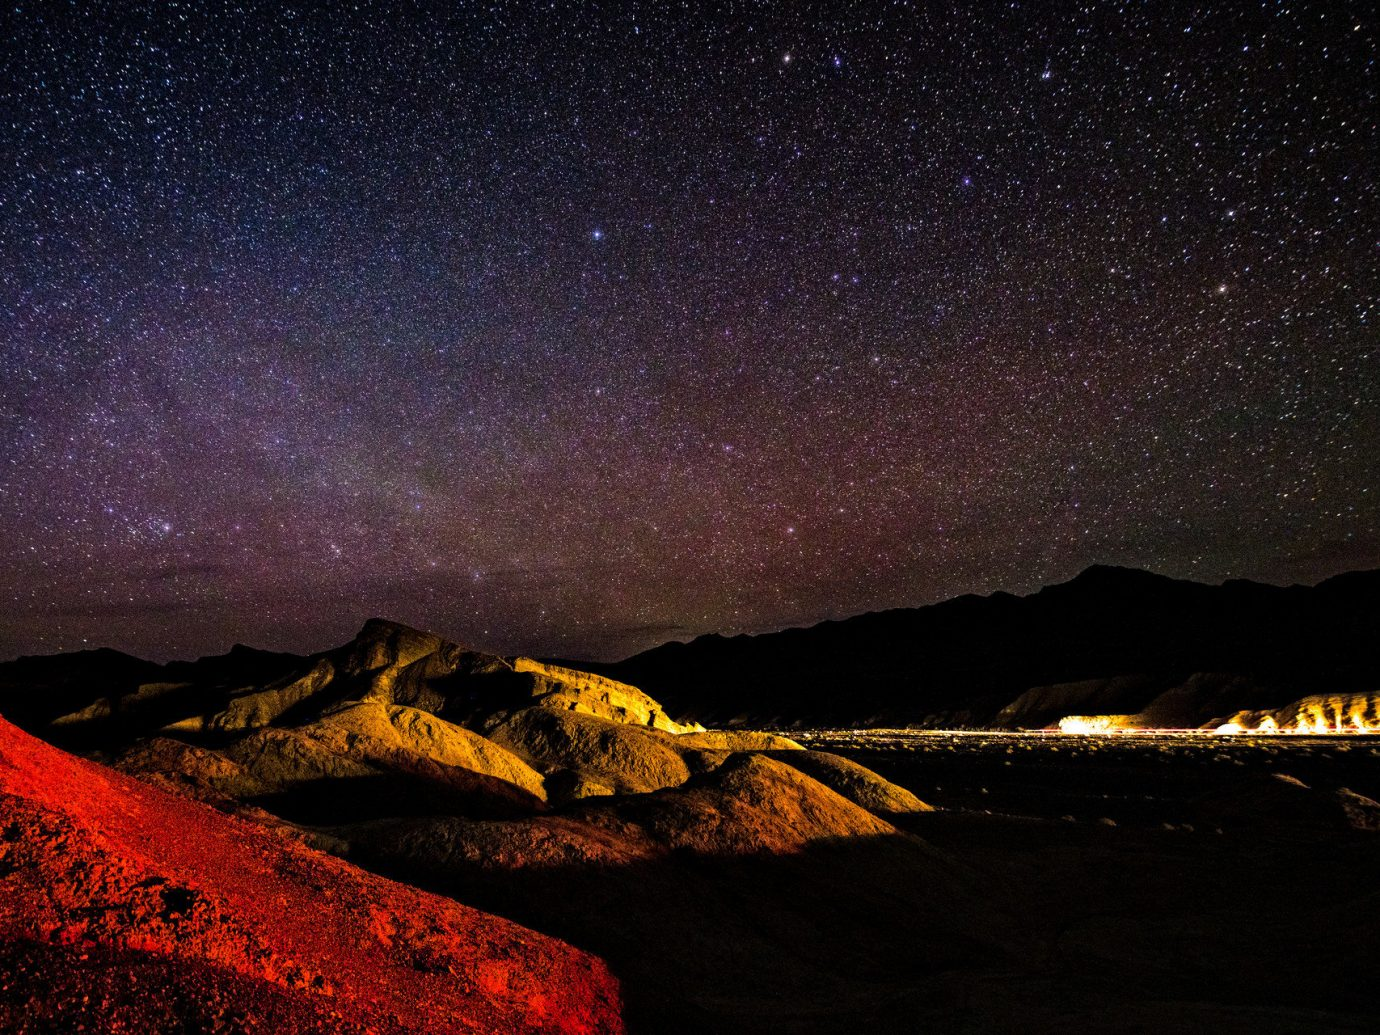 Scenic views Trip Ideas Nature galaxy night astronomical object geological phenomenon atmosphere darkness mountain astronomy dark spiral galaxy star milky way outer space Night Sky